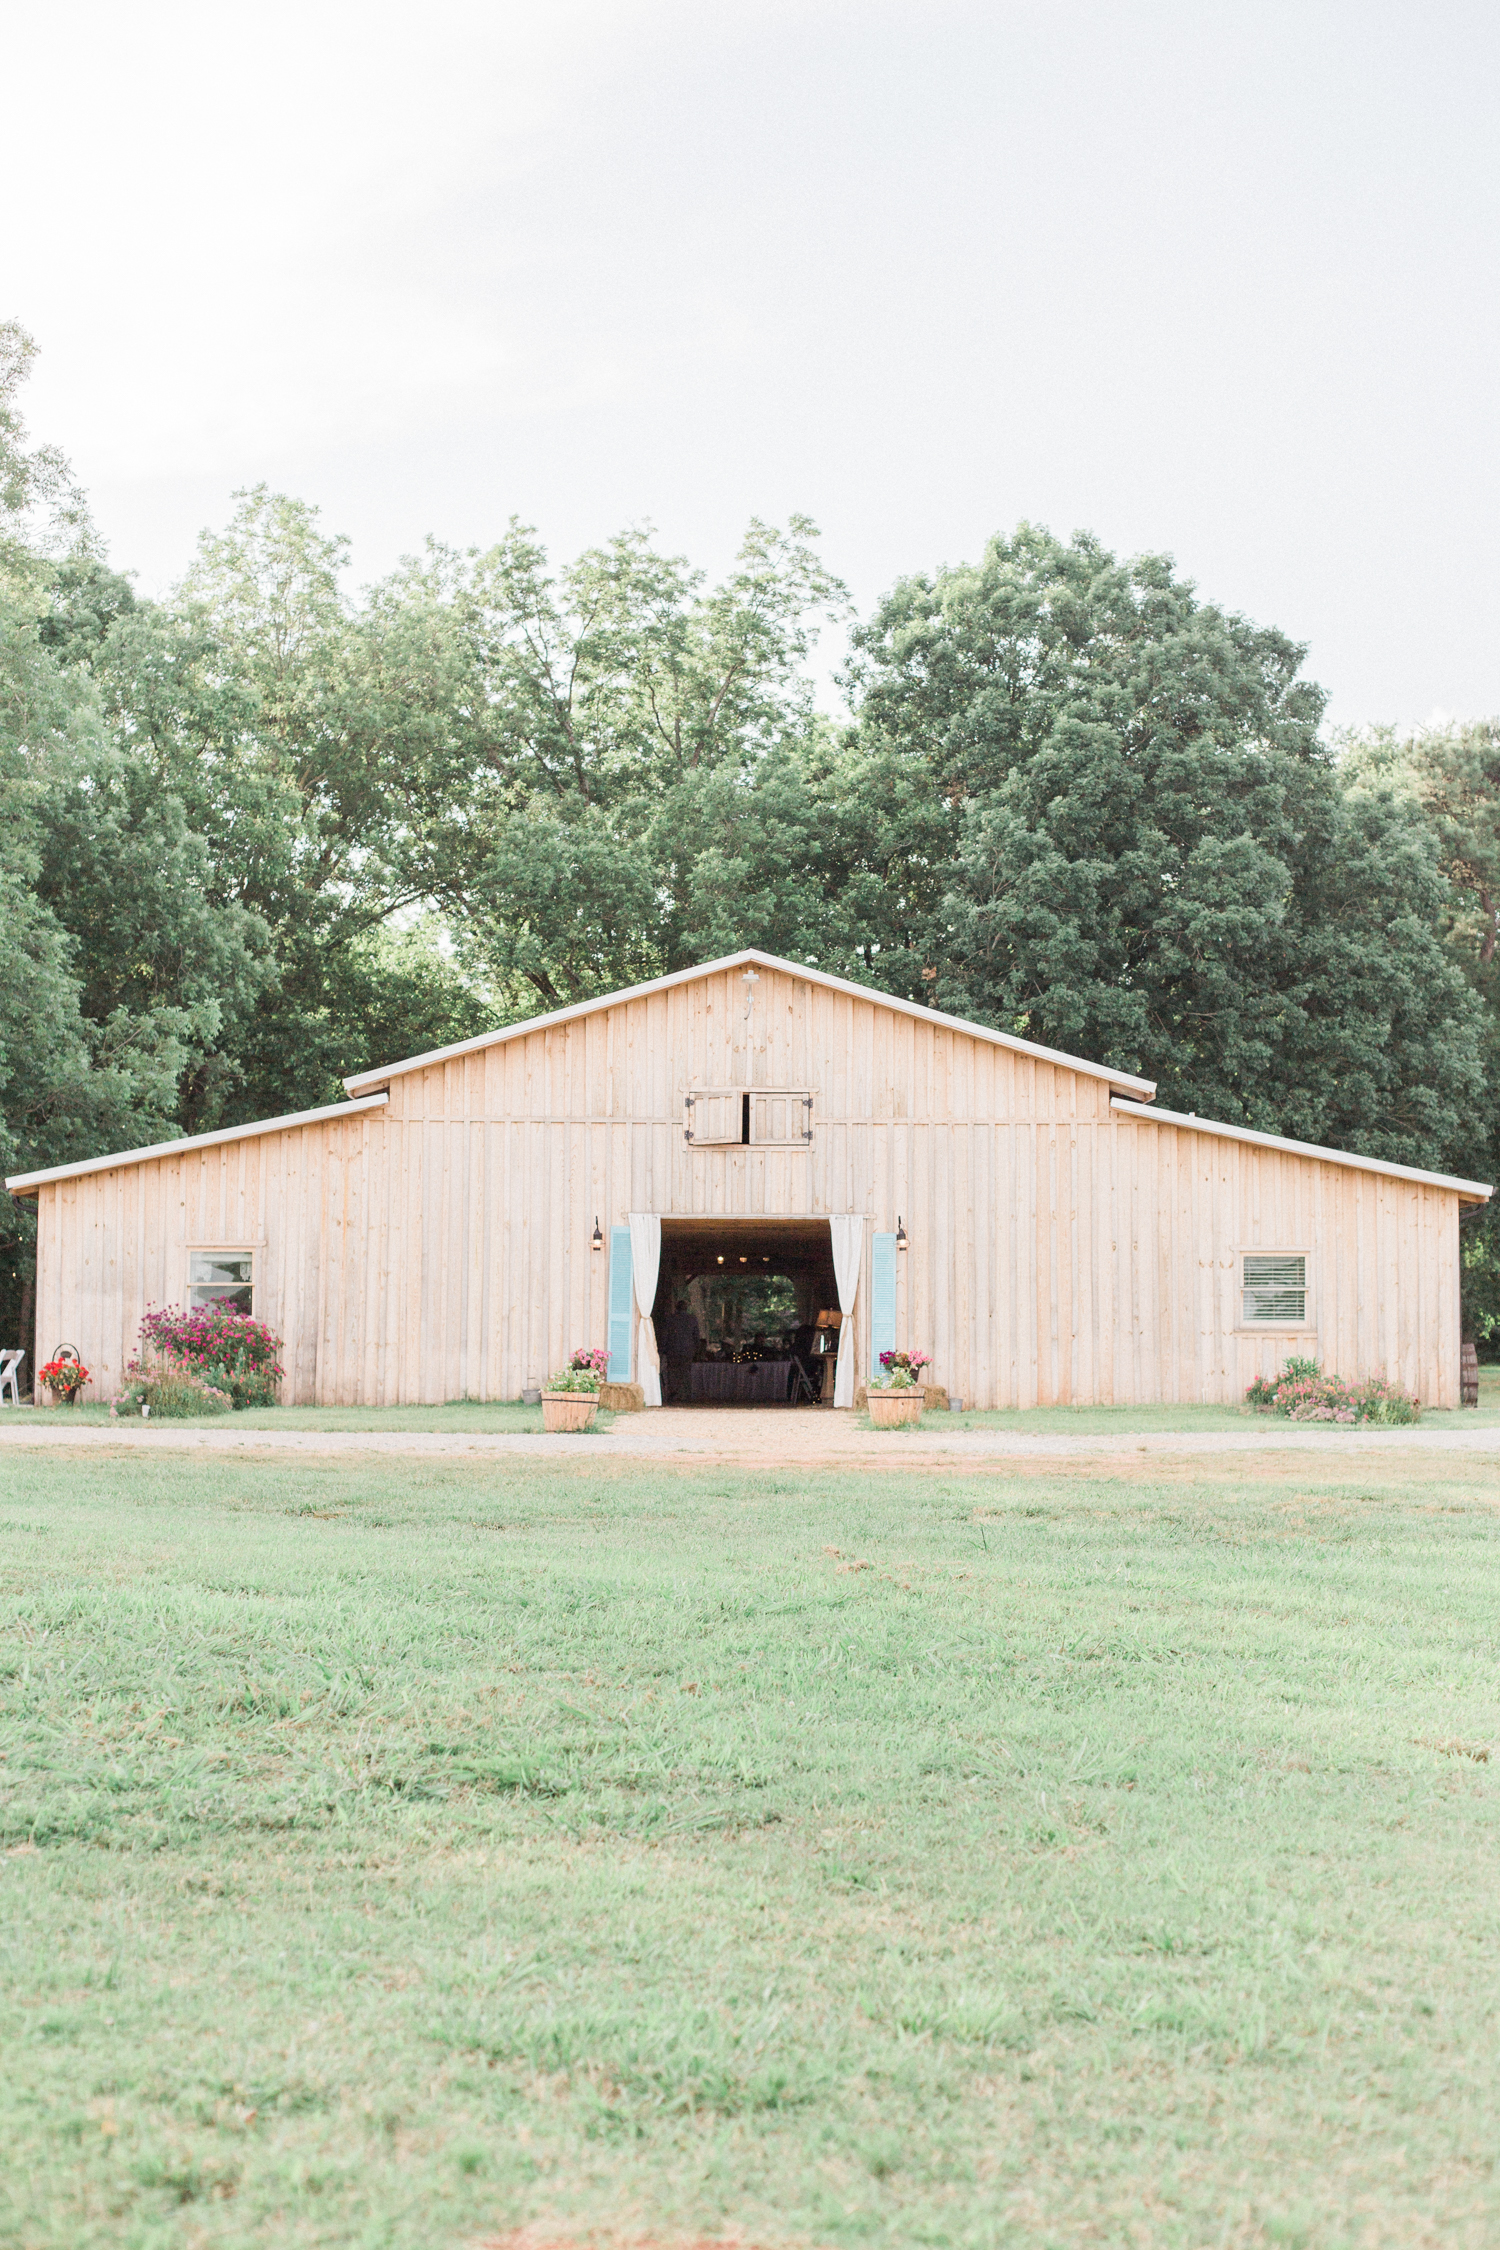 Summer, outdoor, barn wedding in north Georgia at Hays McDonald Farm in Jefferson, Georgia. Photo by Kesia Marie Photography - Fine Art Wedding Photographer.